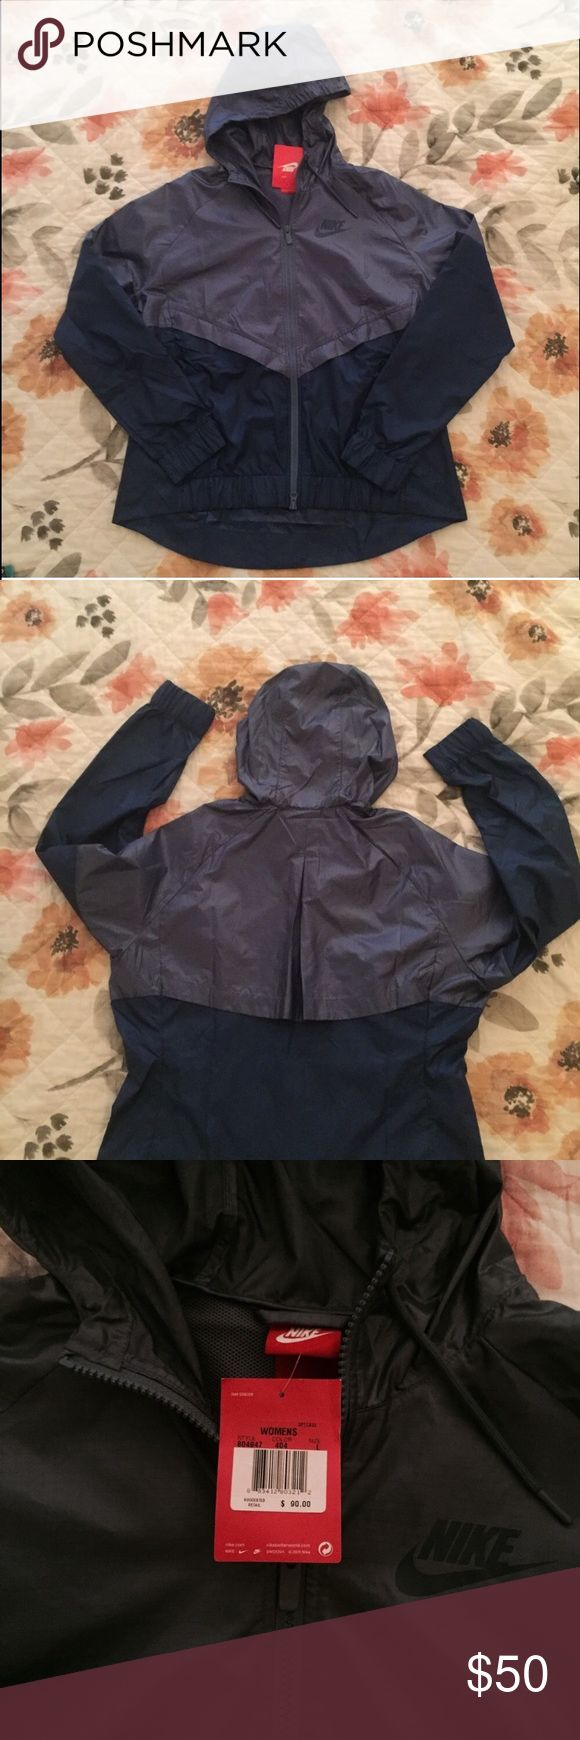 NWT Nike Colorblocked Windrunner Jacket NWT Nike jacket. Versatile and ventilated, this jacket features a multi-panel scuba hood that zips up to the chin and ribbed cuffs and hem for that snug fit. Mesh lining. Nike Jackets & Coats